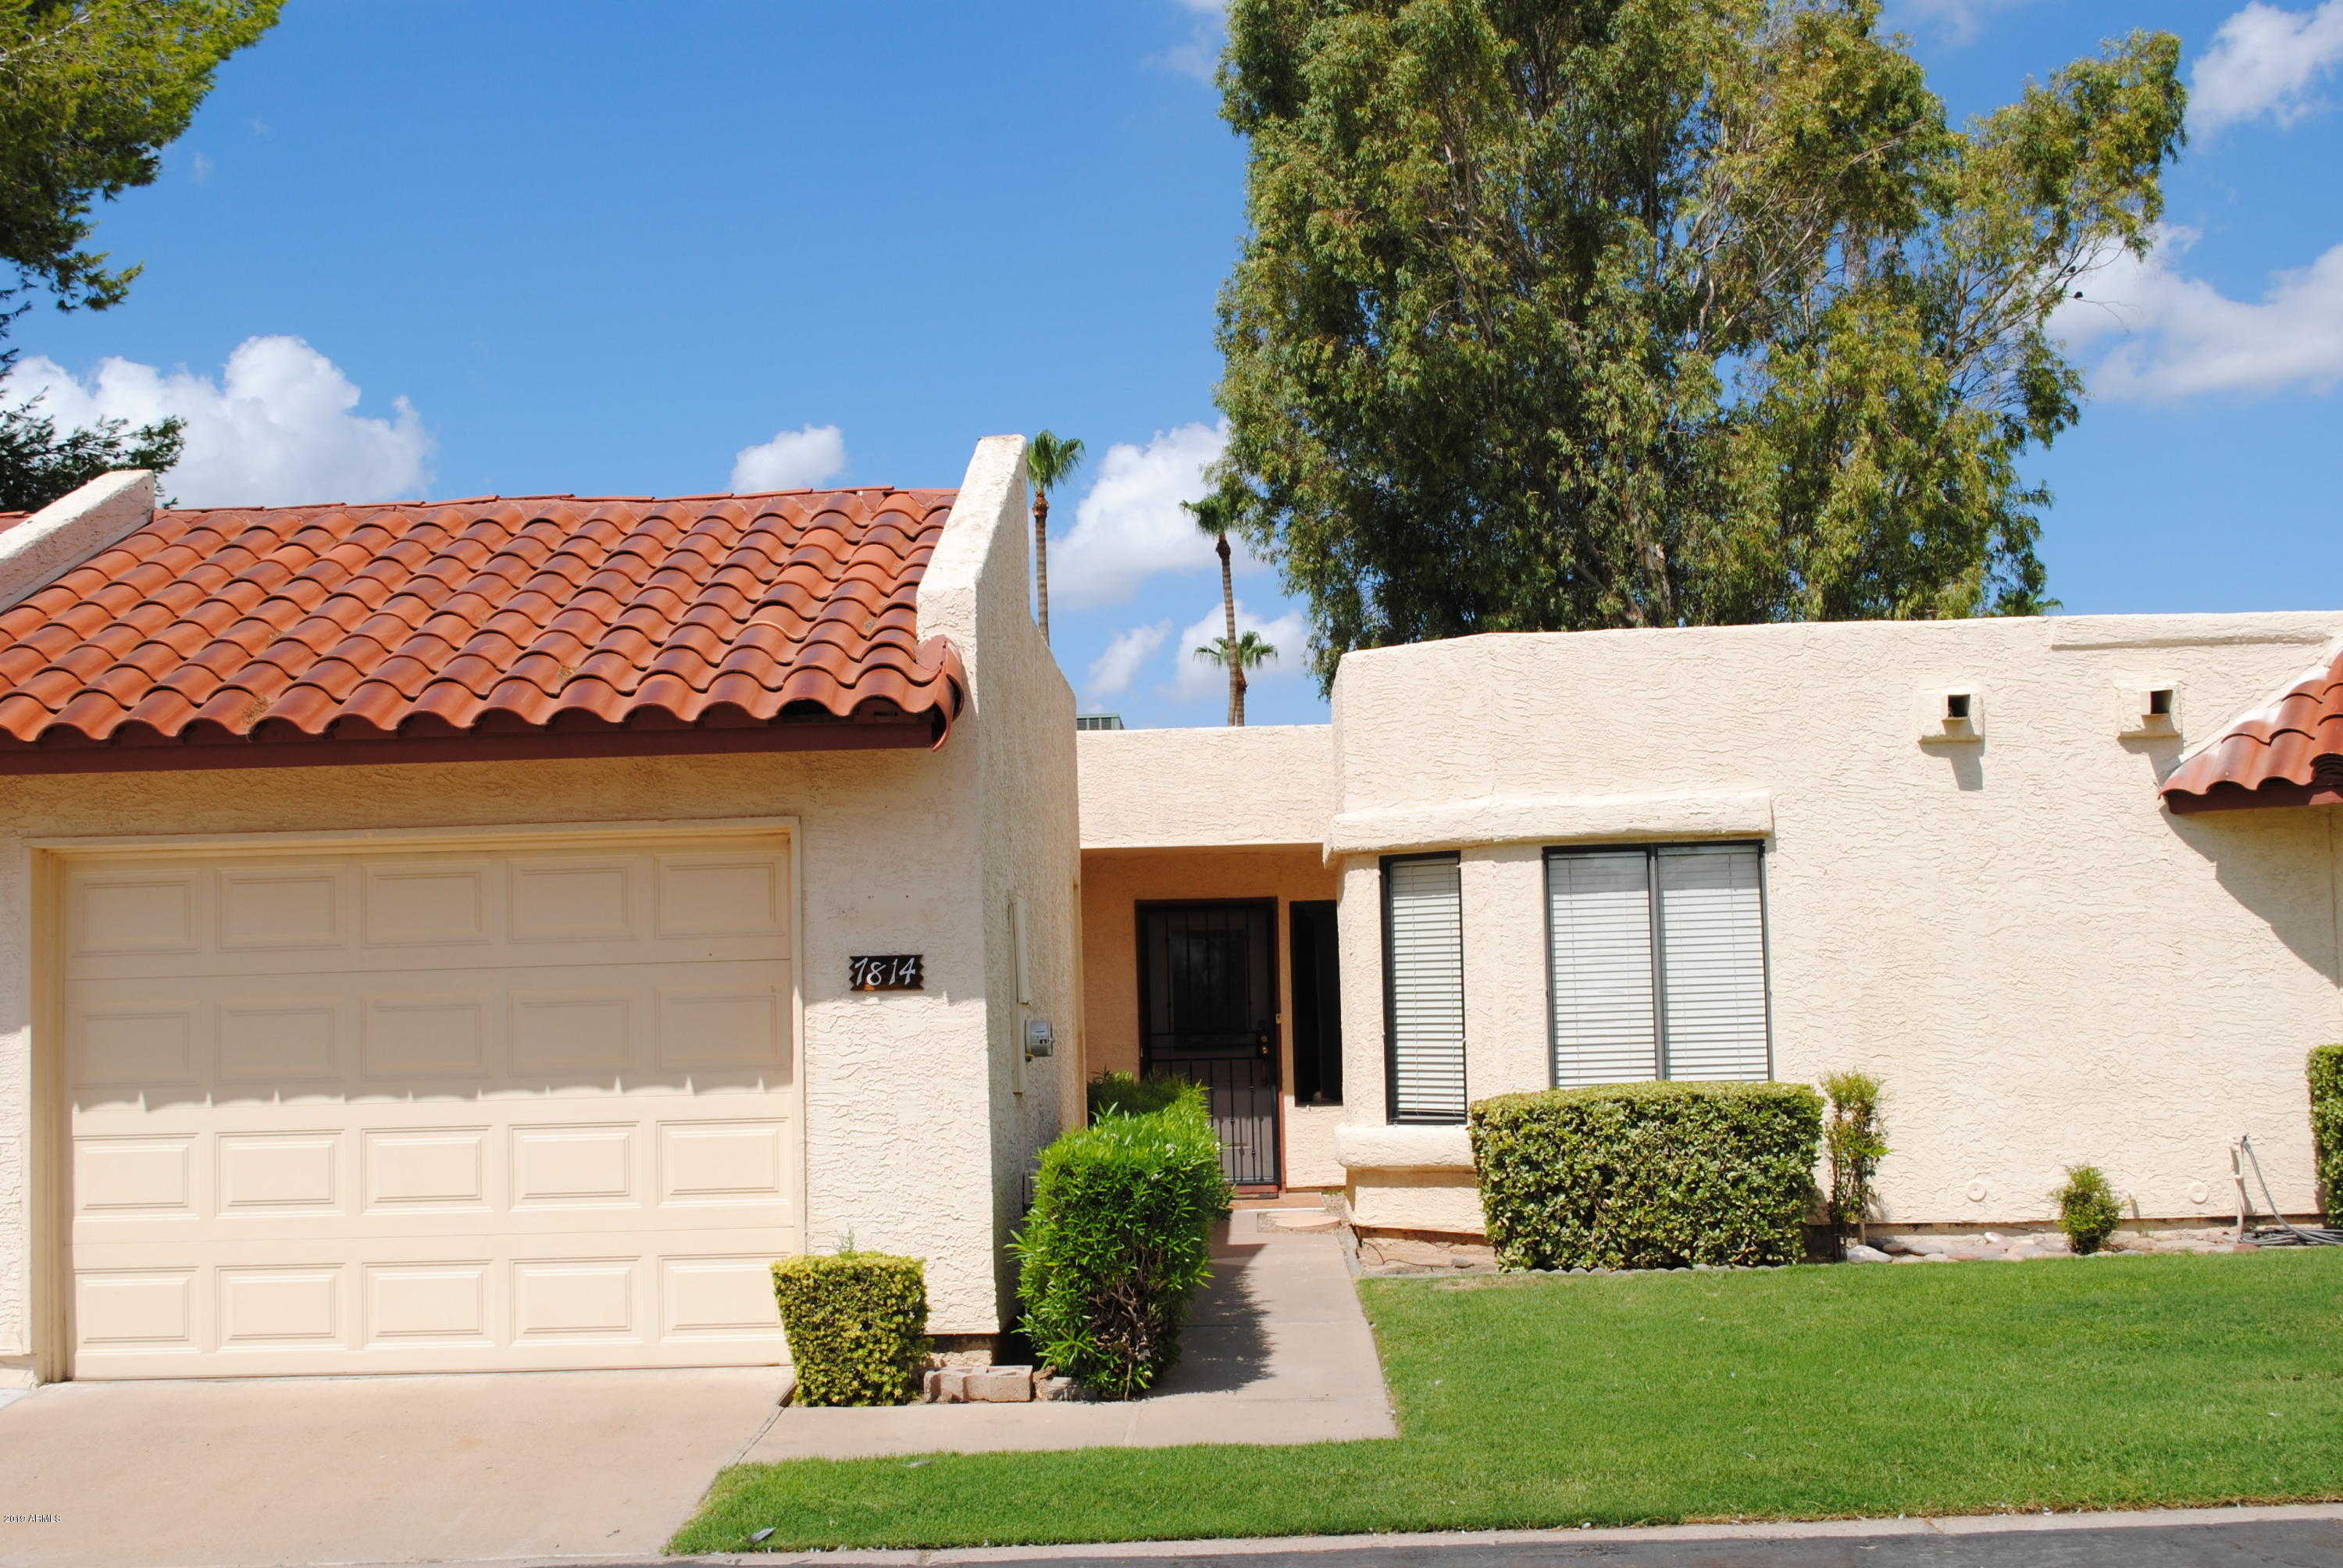 $220,000 - 2Br/2Ba -  for Sale in Fountain Of The Sun Second Ph Par 10 Condo Replat, Mesa